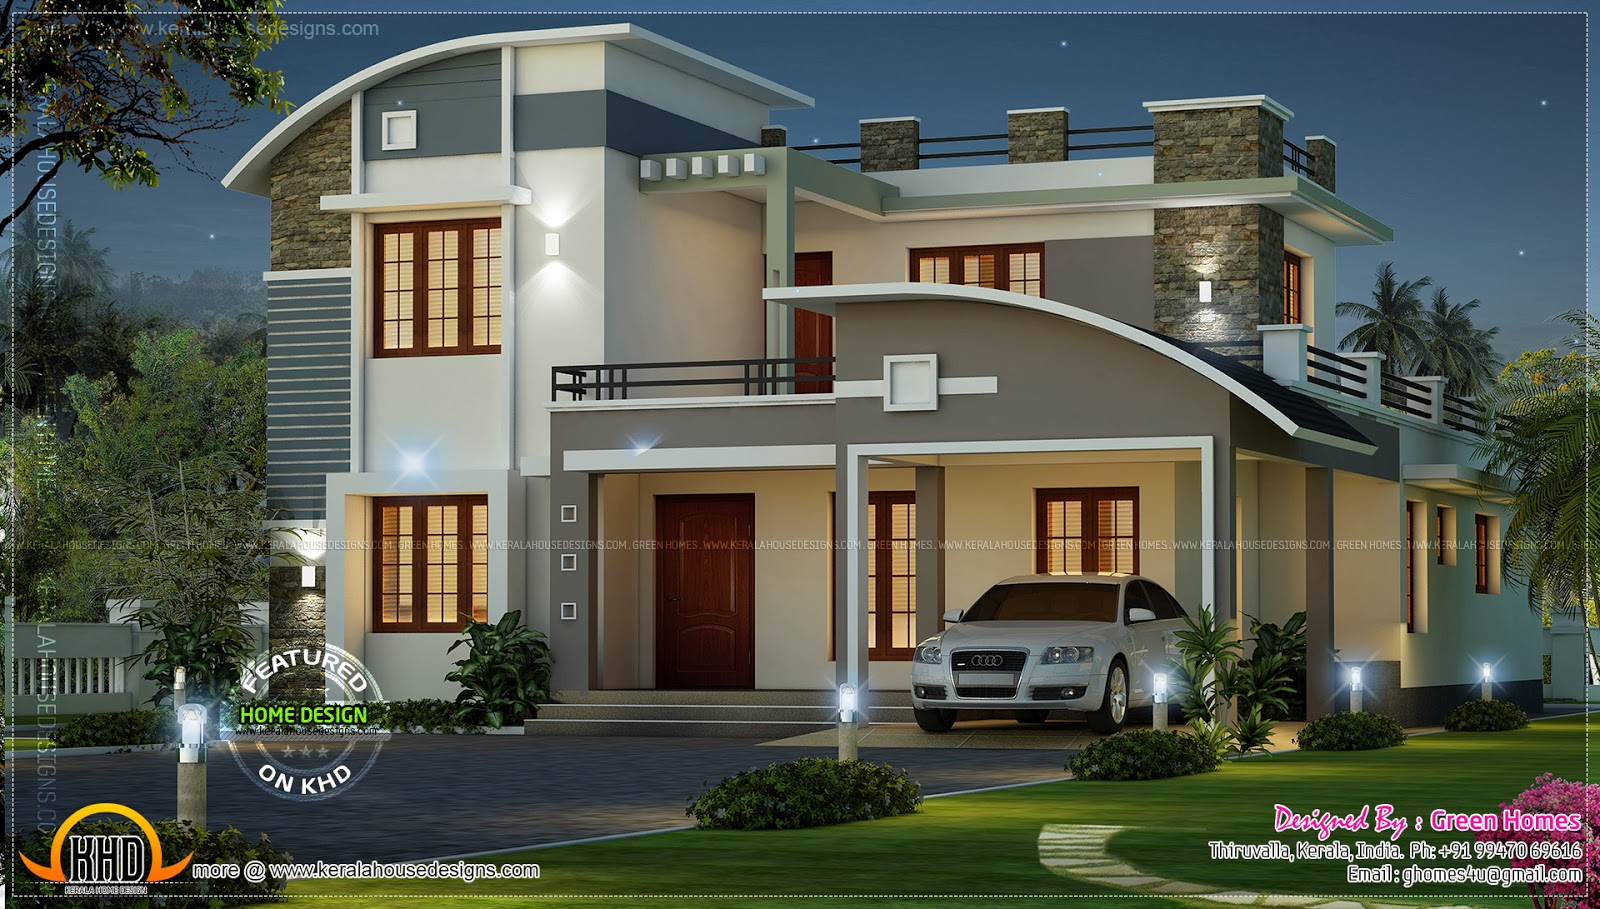 Modern beautiful home kerala home design and floor plans for Modern villa plans and elevations